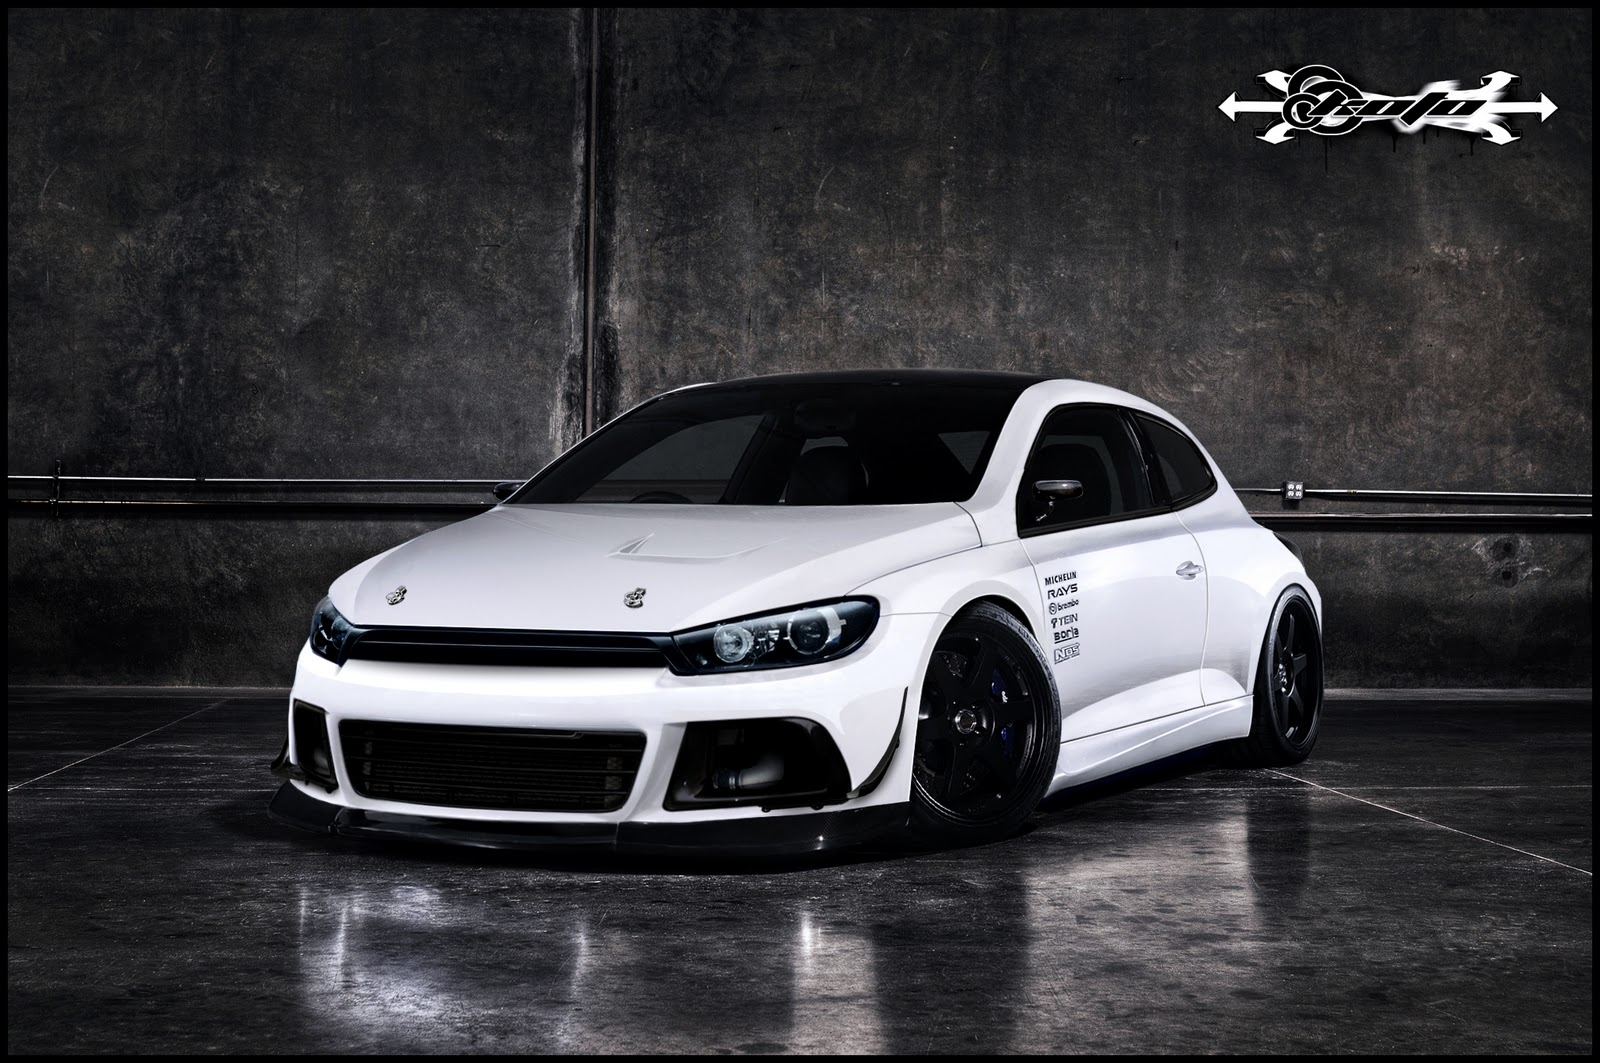 free cars hd wallpapers volkswagen scirocco tuning car hd